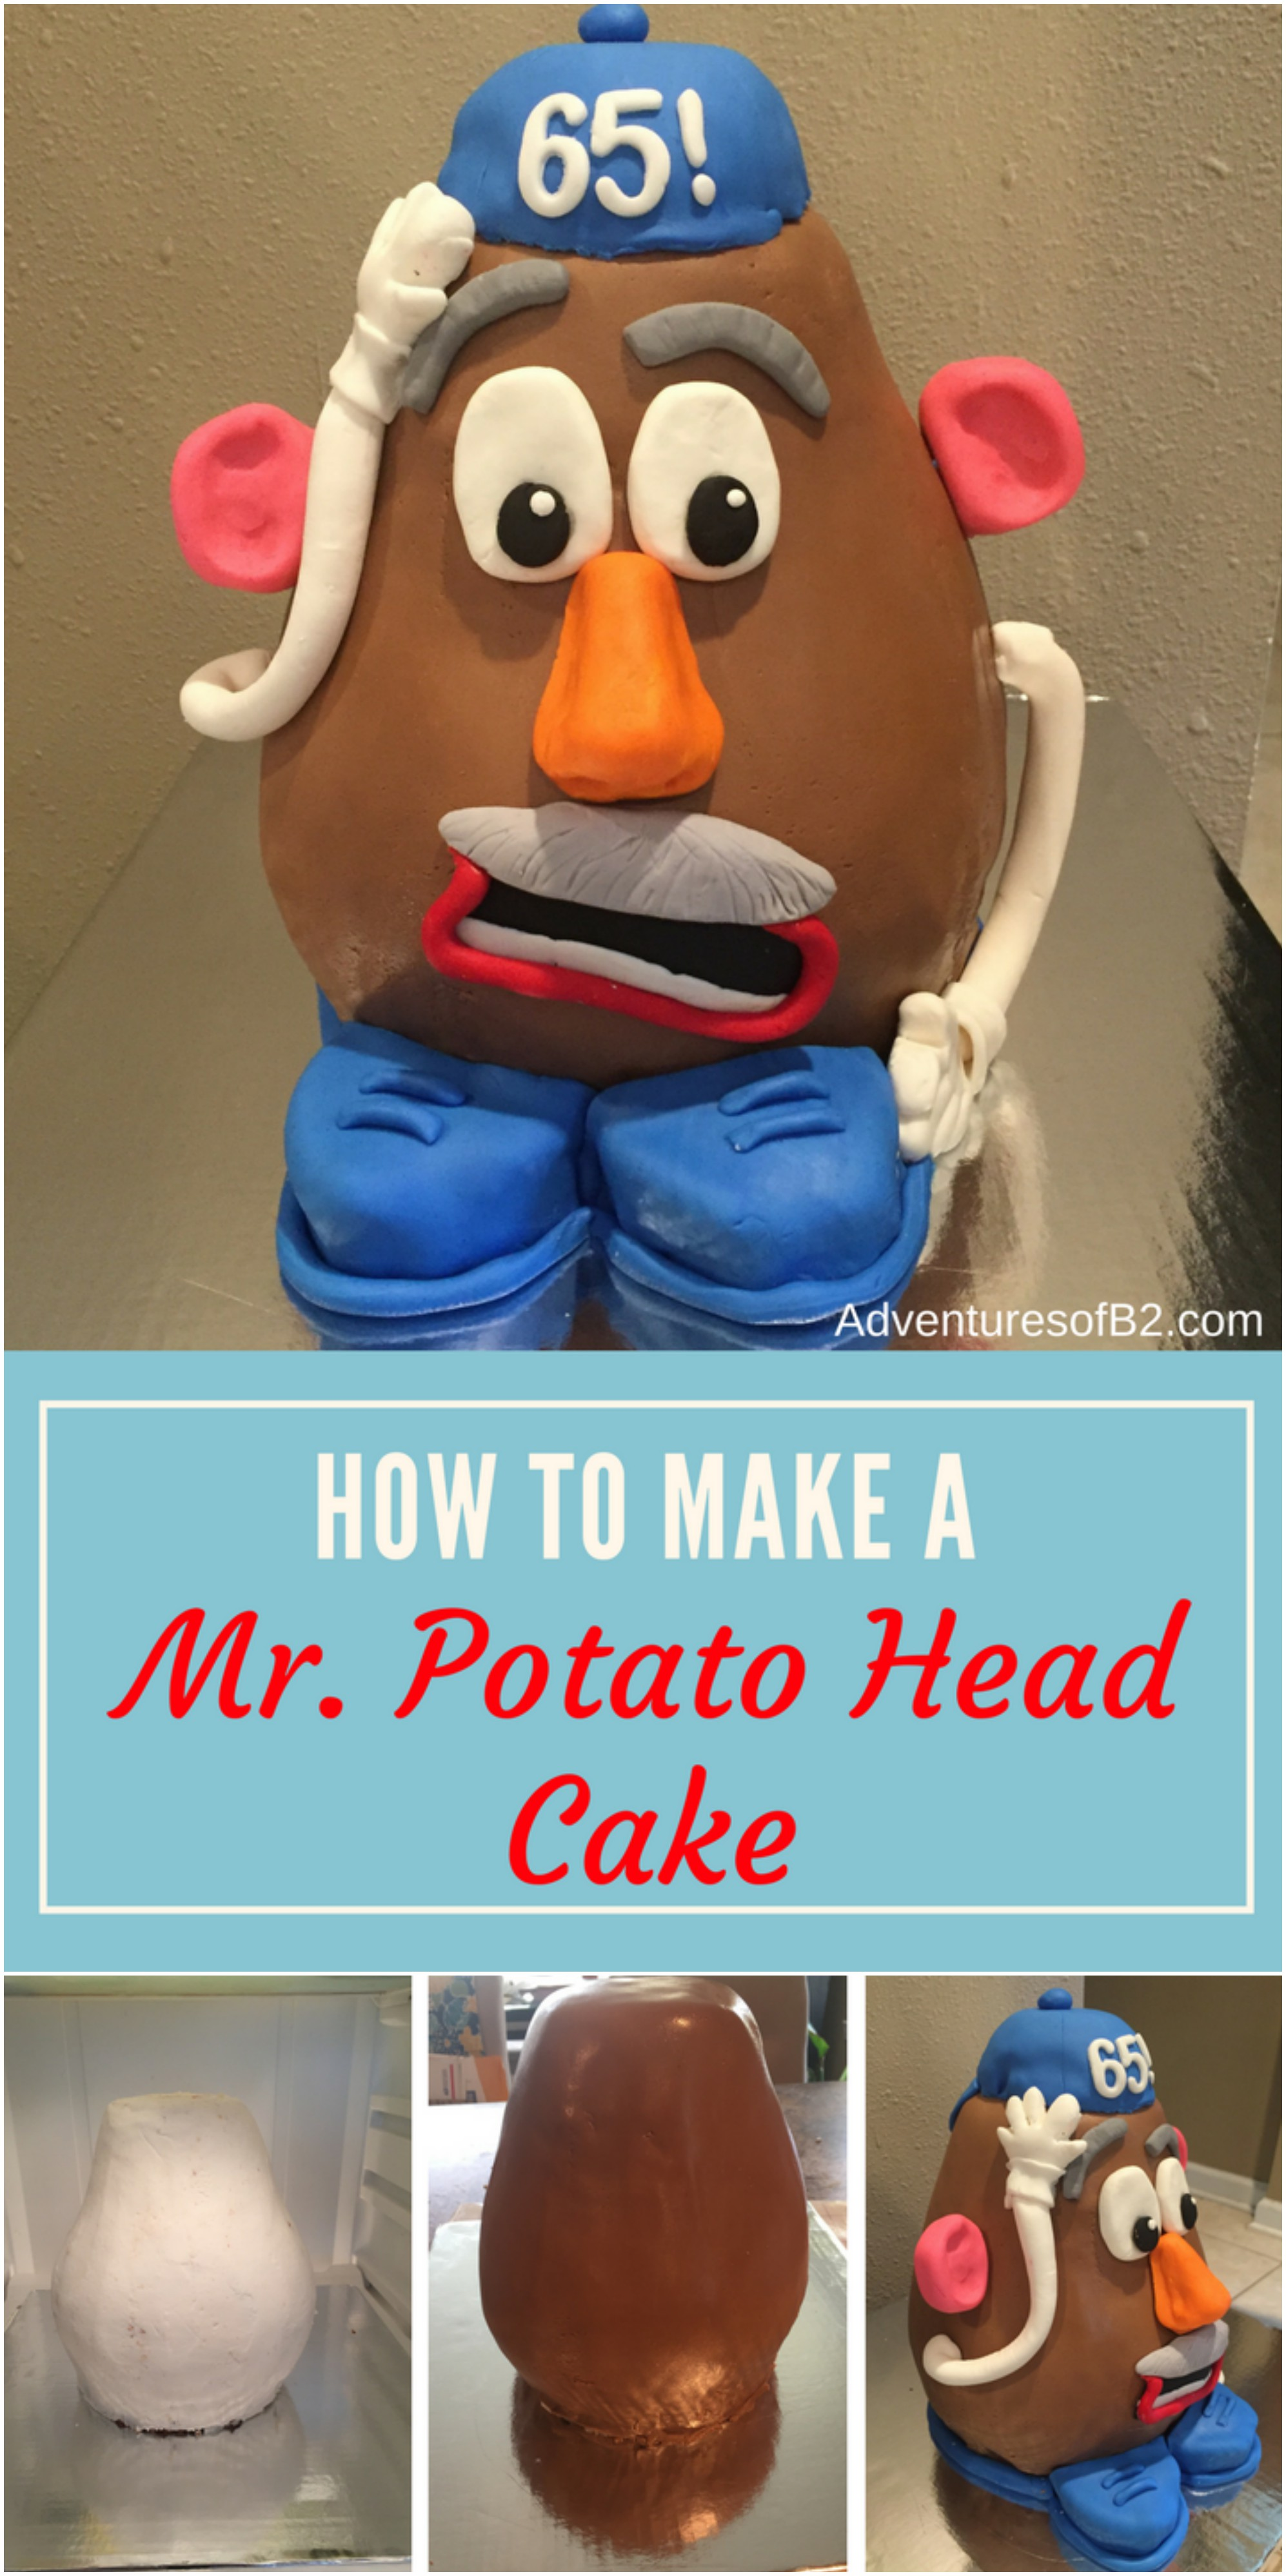 How to make a Mr. Potato Head Cake